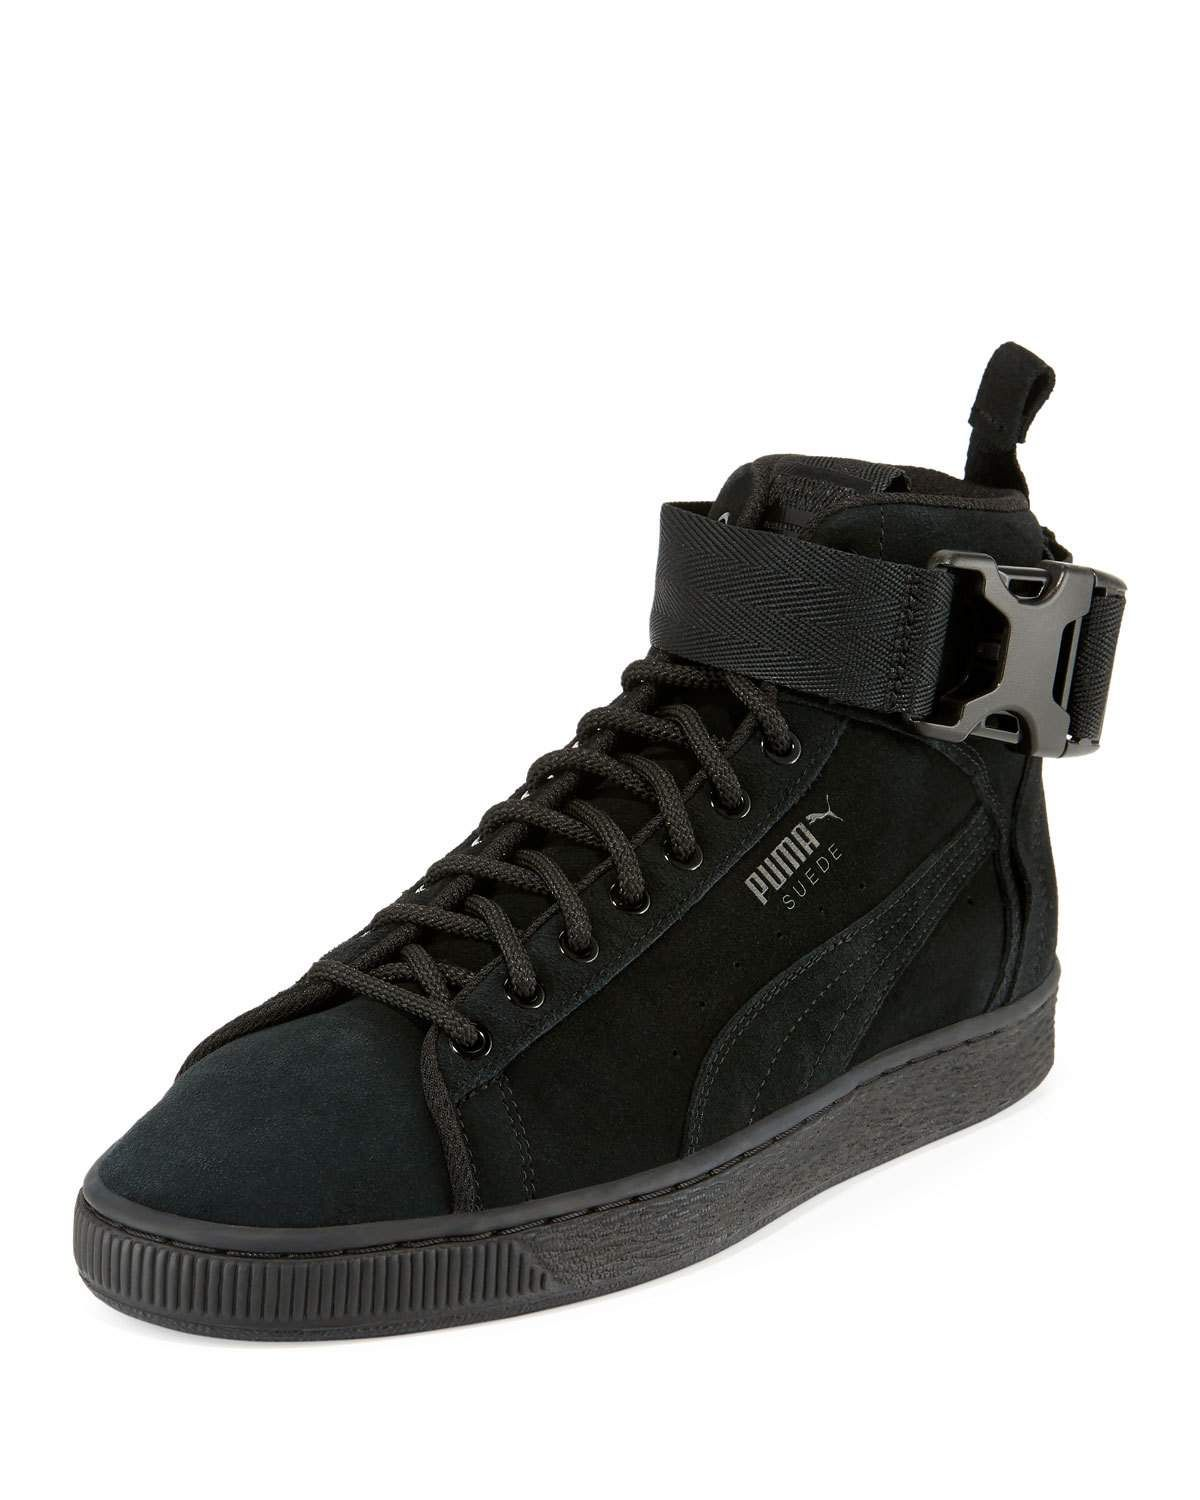 1316053df9b21 PUMA MEN S SUEDE MID-TOP BUCKLE SNEAKERS.  puma  shoes